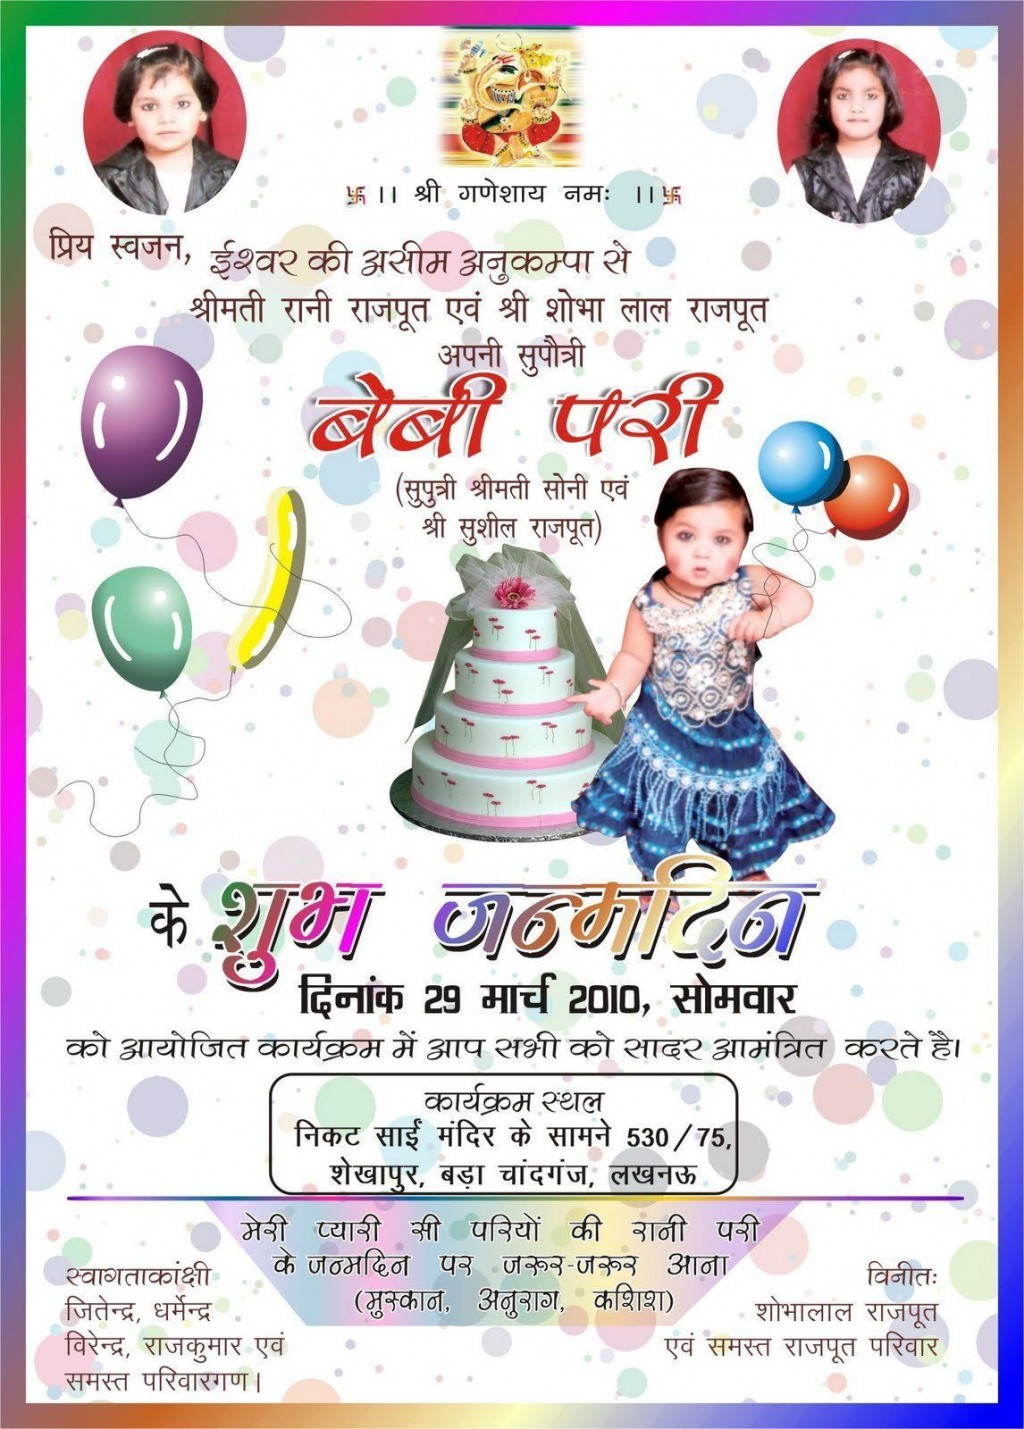 006 Astounding Free Online Birthday Invitation Card Maker With Name And Photo High Definition Large